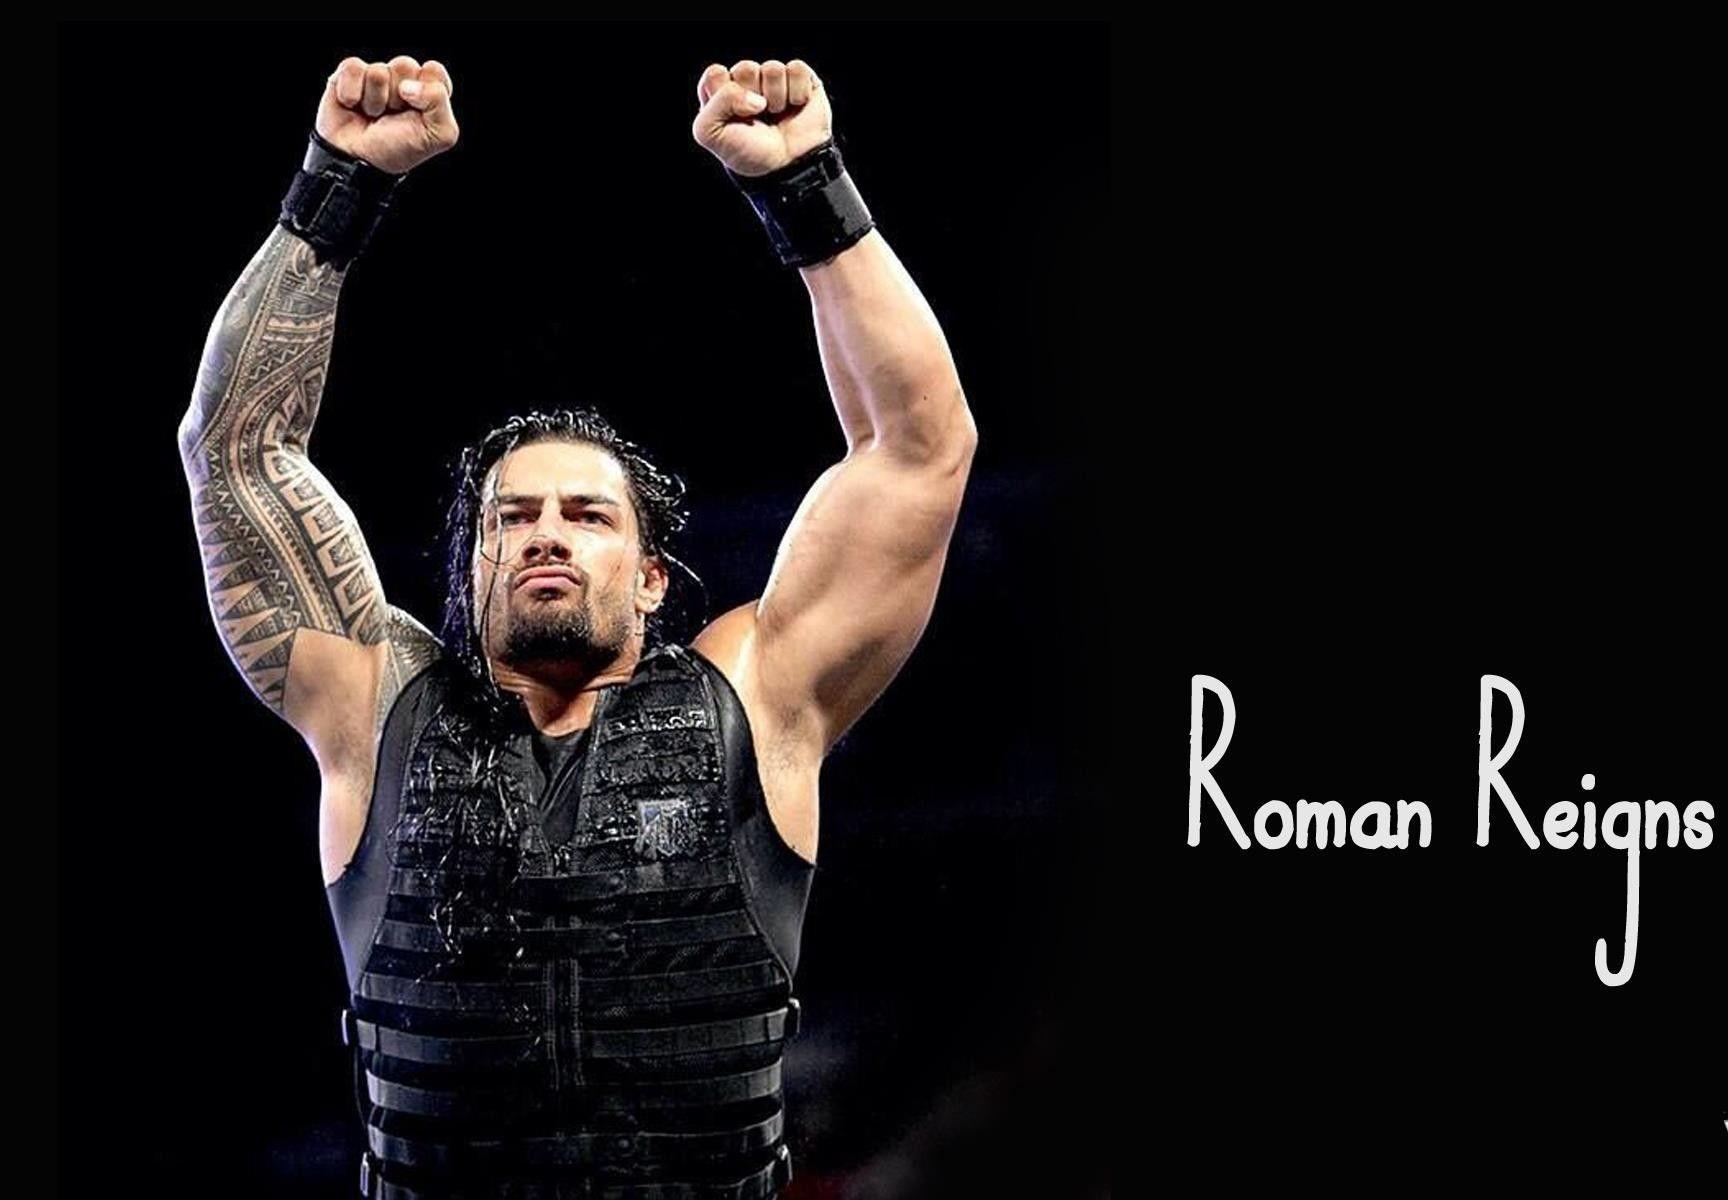 Roman Reigns Wallpapers 1728x1200